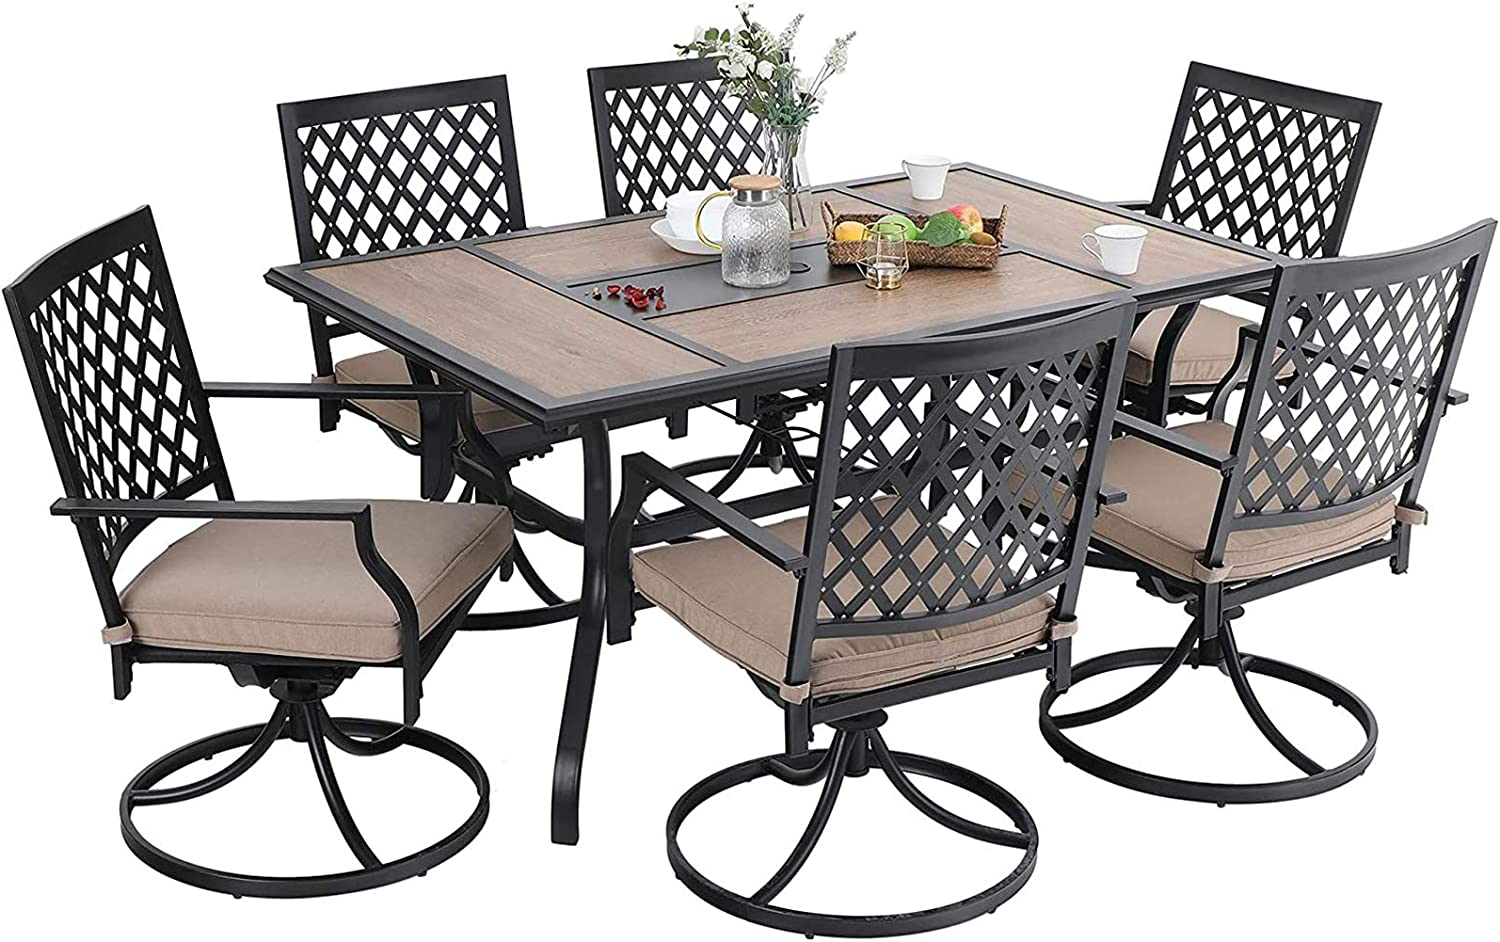 MFSTUDIO 7PCS Patio Dining Set, Large Rectangular Wood Like Top Table with 6 Swivel Chairs, Outdoor Metal Furniture Set with Umbrella Hole & Removable Cushions for Garden, Backyard, Poolside